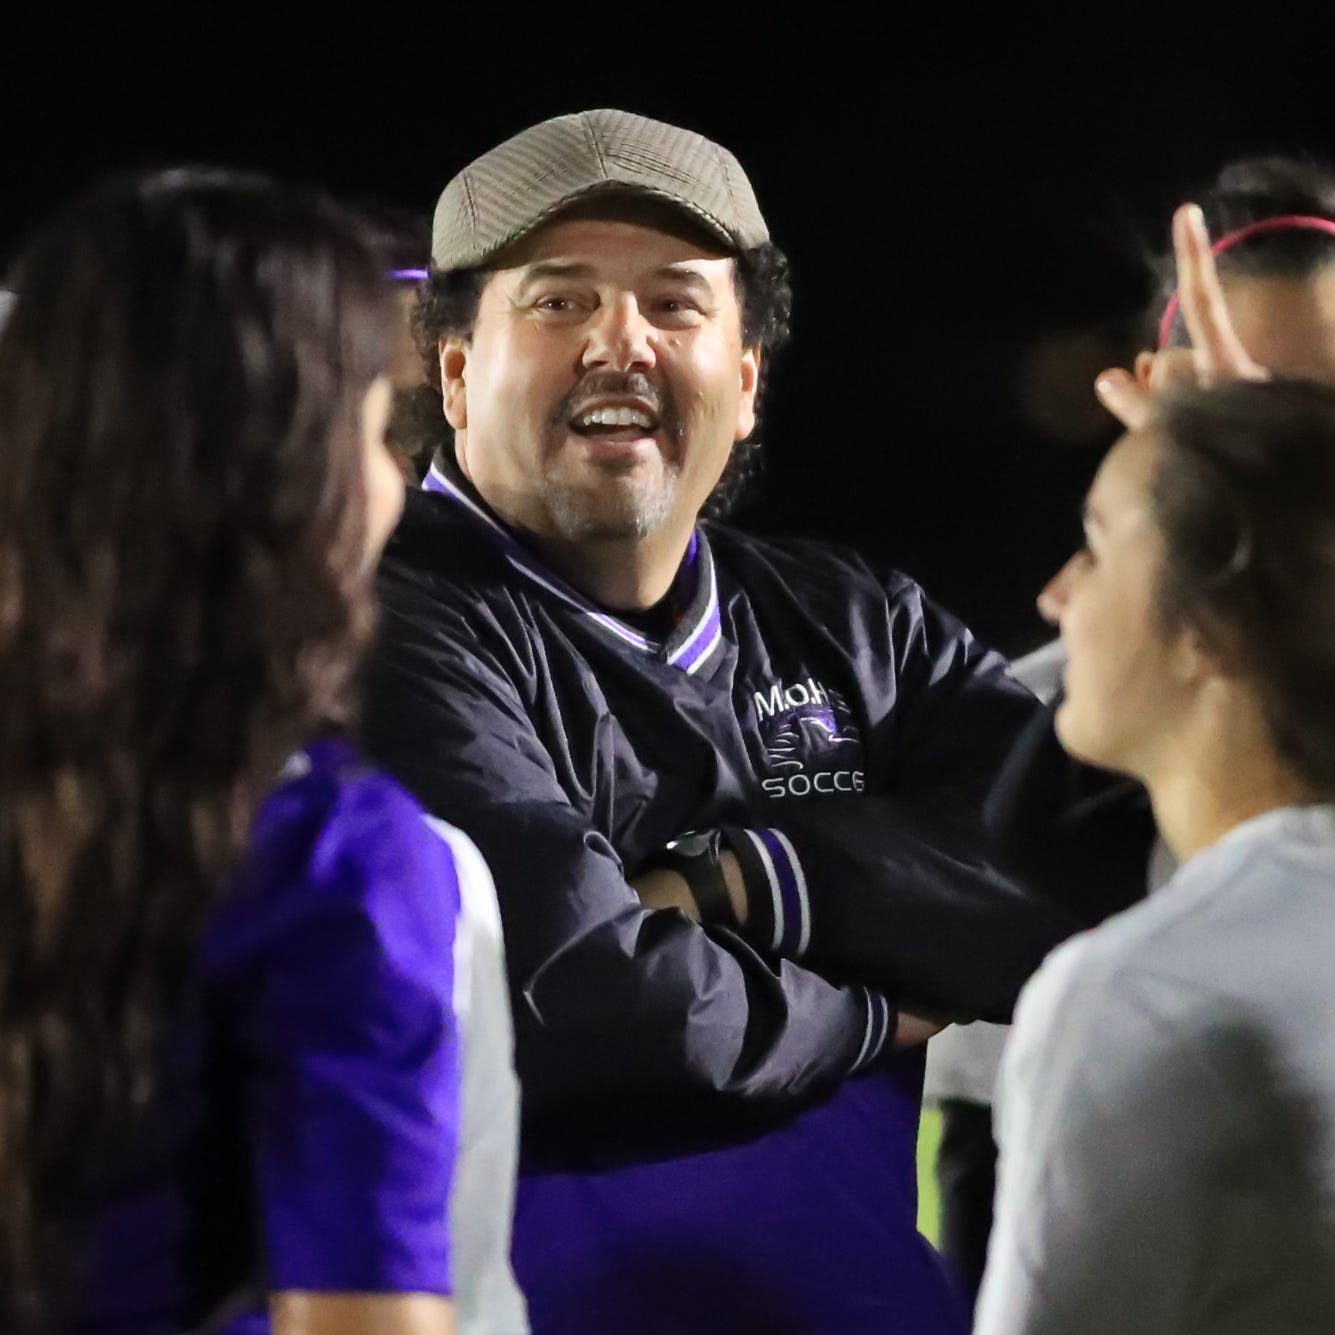 Mission Oak soccer coach dies, remembered for impact on soccer community